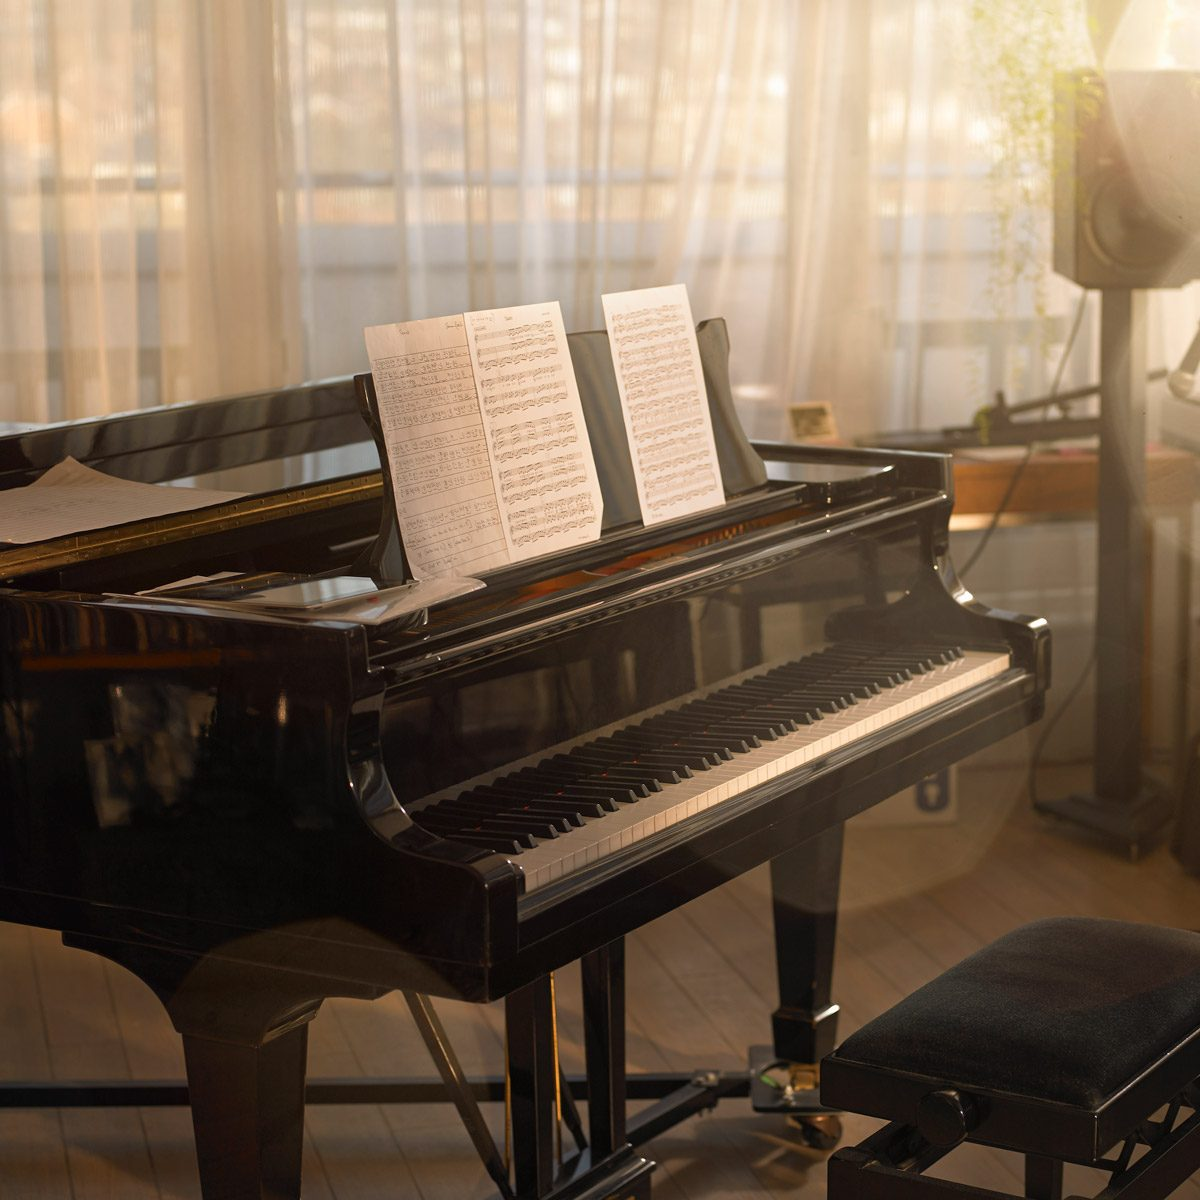 Grand Piano in a music room Gettyimages 481492419